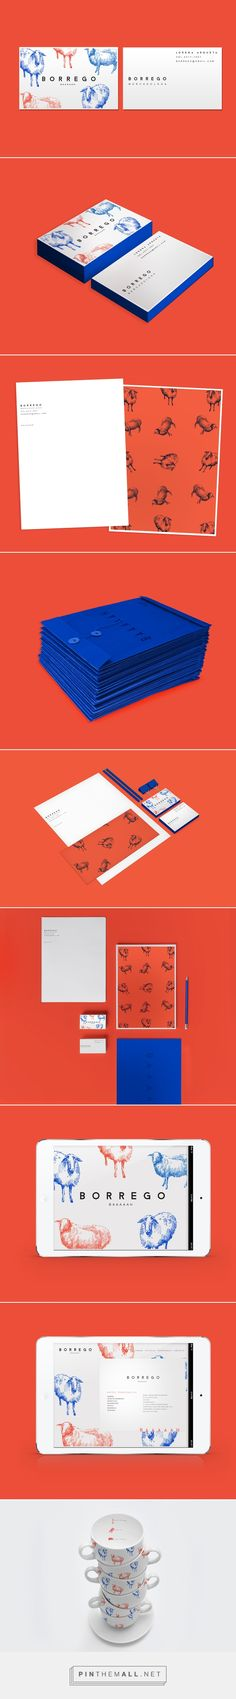 Borrego Branding on Behance | Fivestar Branding – Design and Branding Agency & Inspiration Gallery